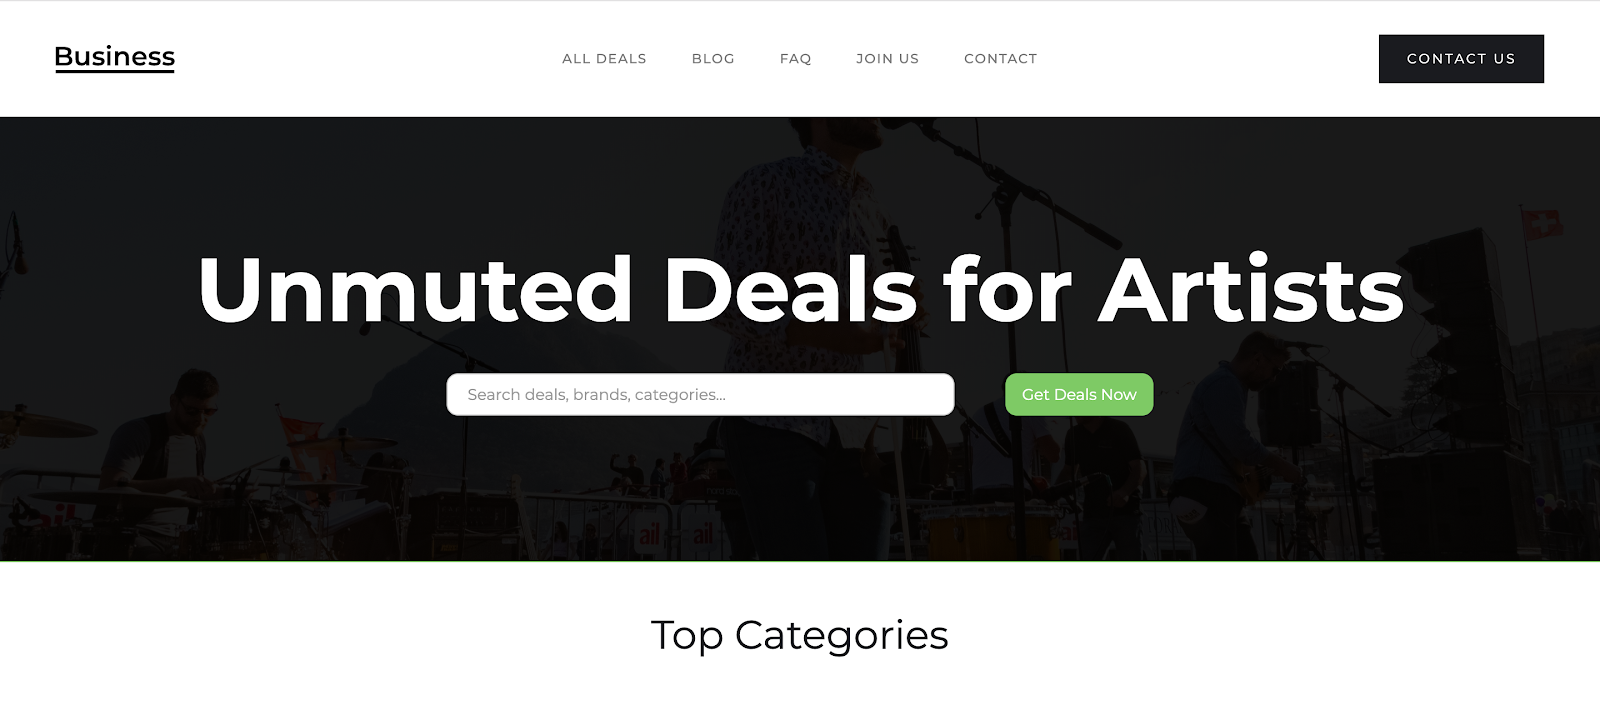 Unmuted Deals for Artists Concept